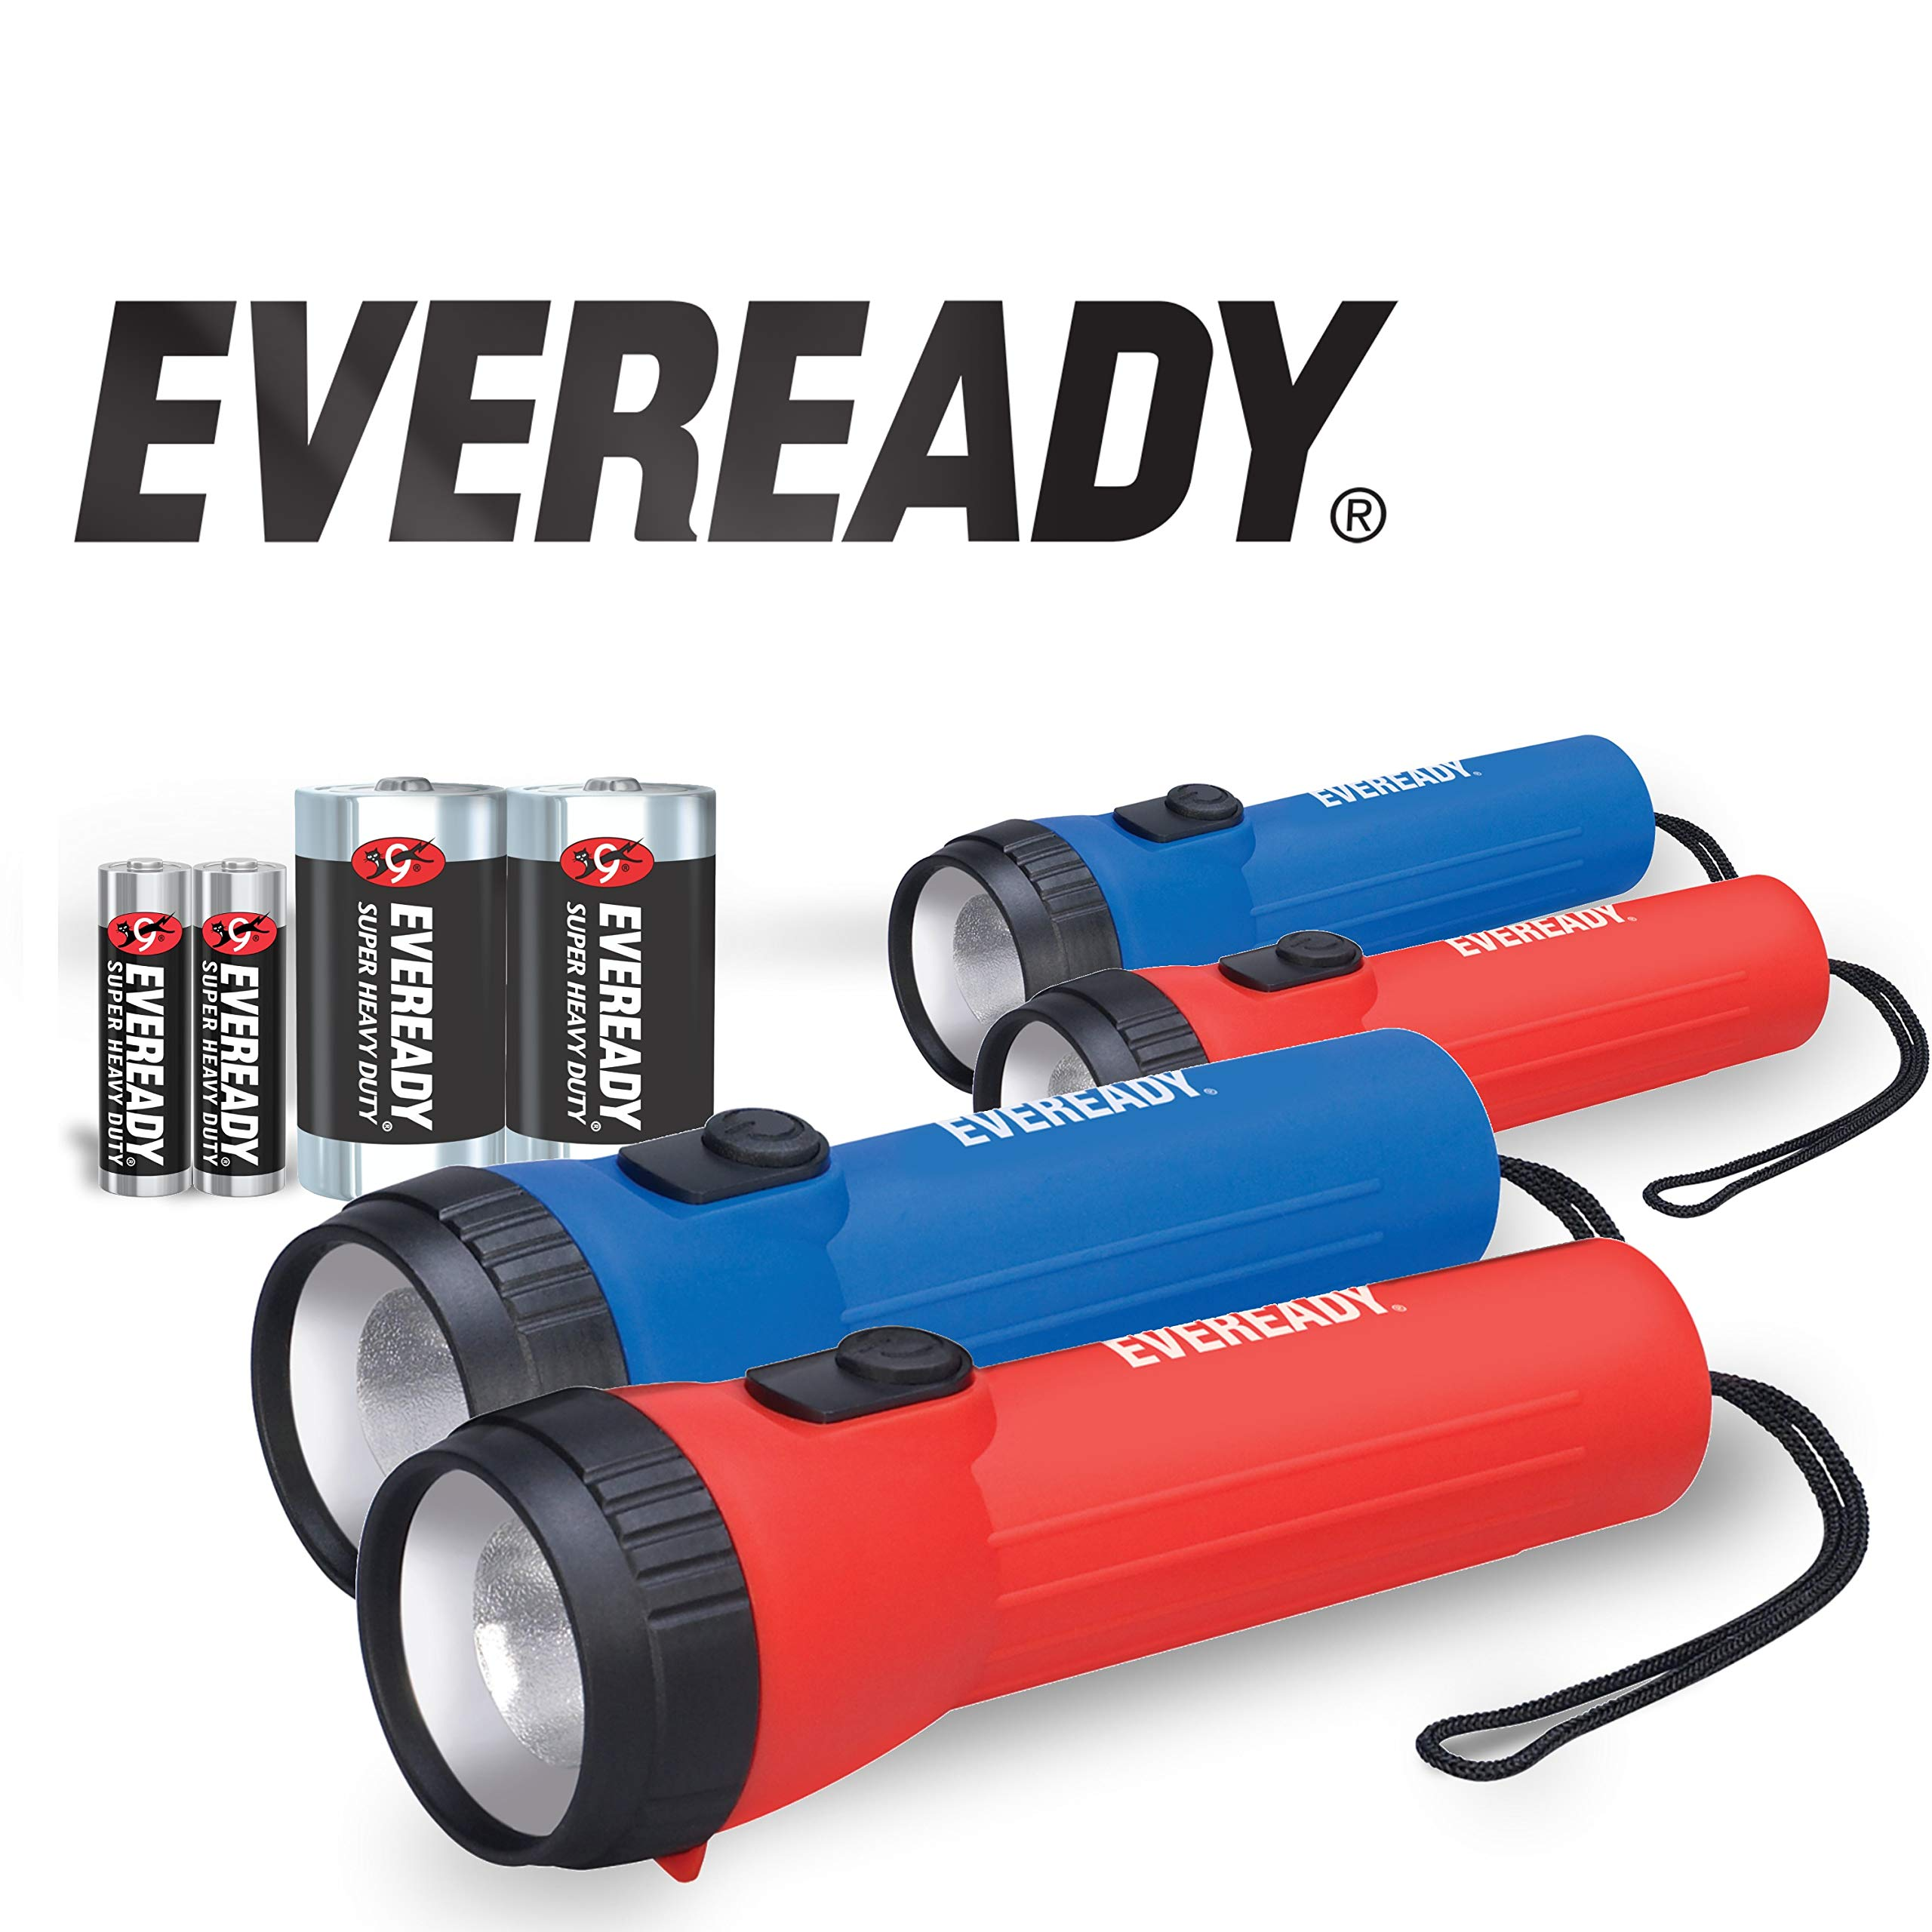 Eveready LED Flashlight 4-Pack , 25 Lumens, Durable Ribbed Casing for Strength and Grip